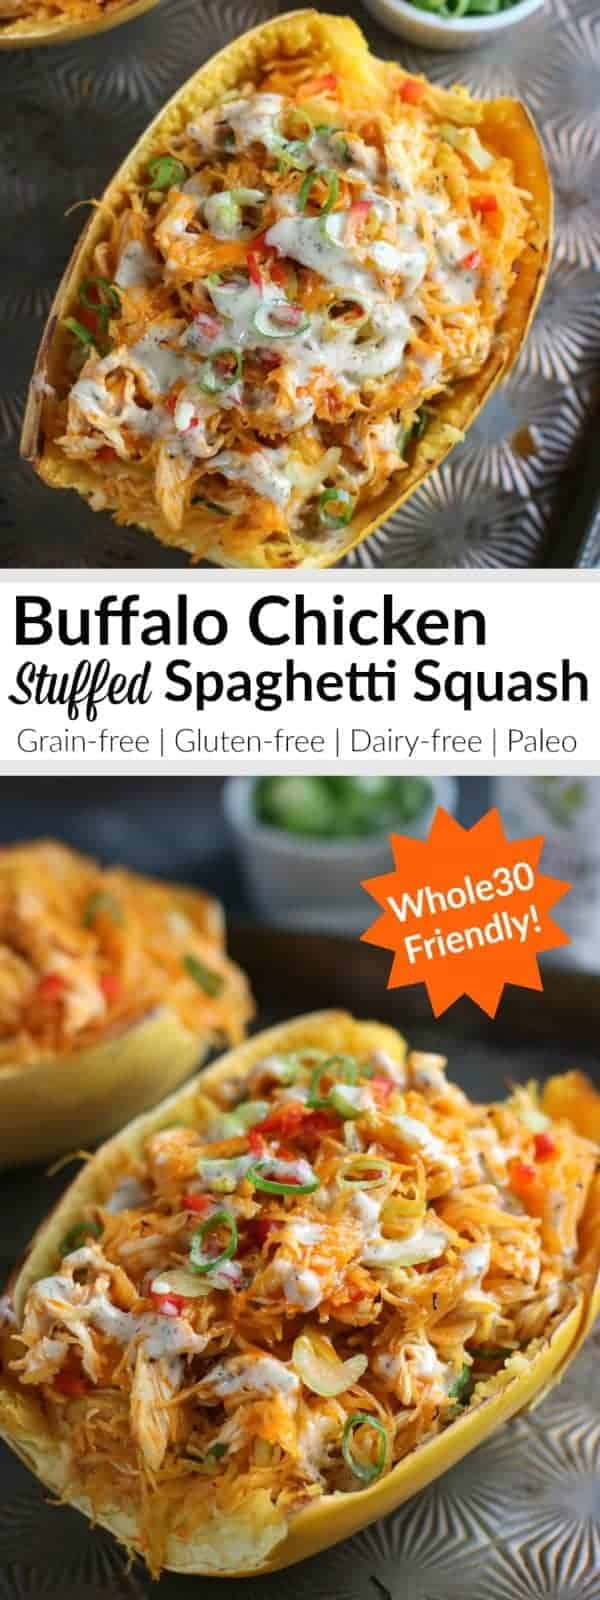 Buffalo Chicken Stuffed Spaghetti Squash | This is for the Buffalo chicken lovers who want a dish they can really tuck into and enjoy without any guilt. Drizzling the twice baked squash with creamy ranch dressing or a sprinkling of blue cheese (sorry, not Whole30) takes it over the top. You just might want to hide any leftovers - it's that good! | Whole30 | Paleo | Gluten-free | Grain-free | Dairy-free | https://therealfoodrds.com/buffalo-chicken-stuffed-spaghetti-squash/